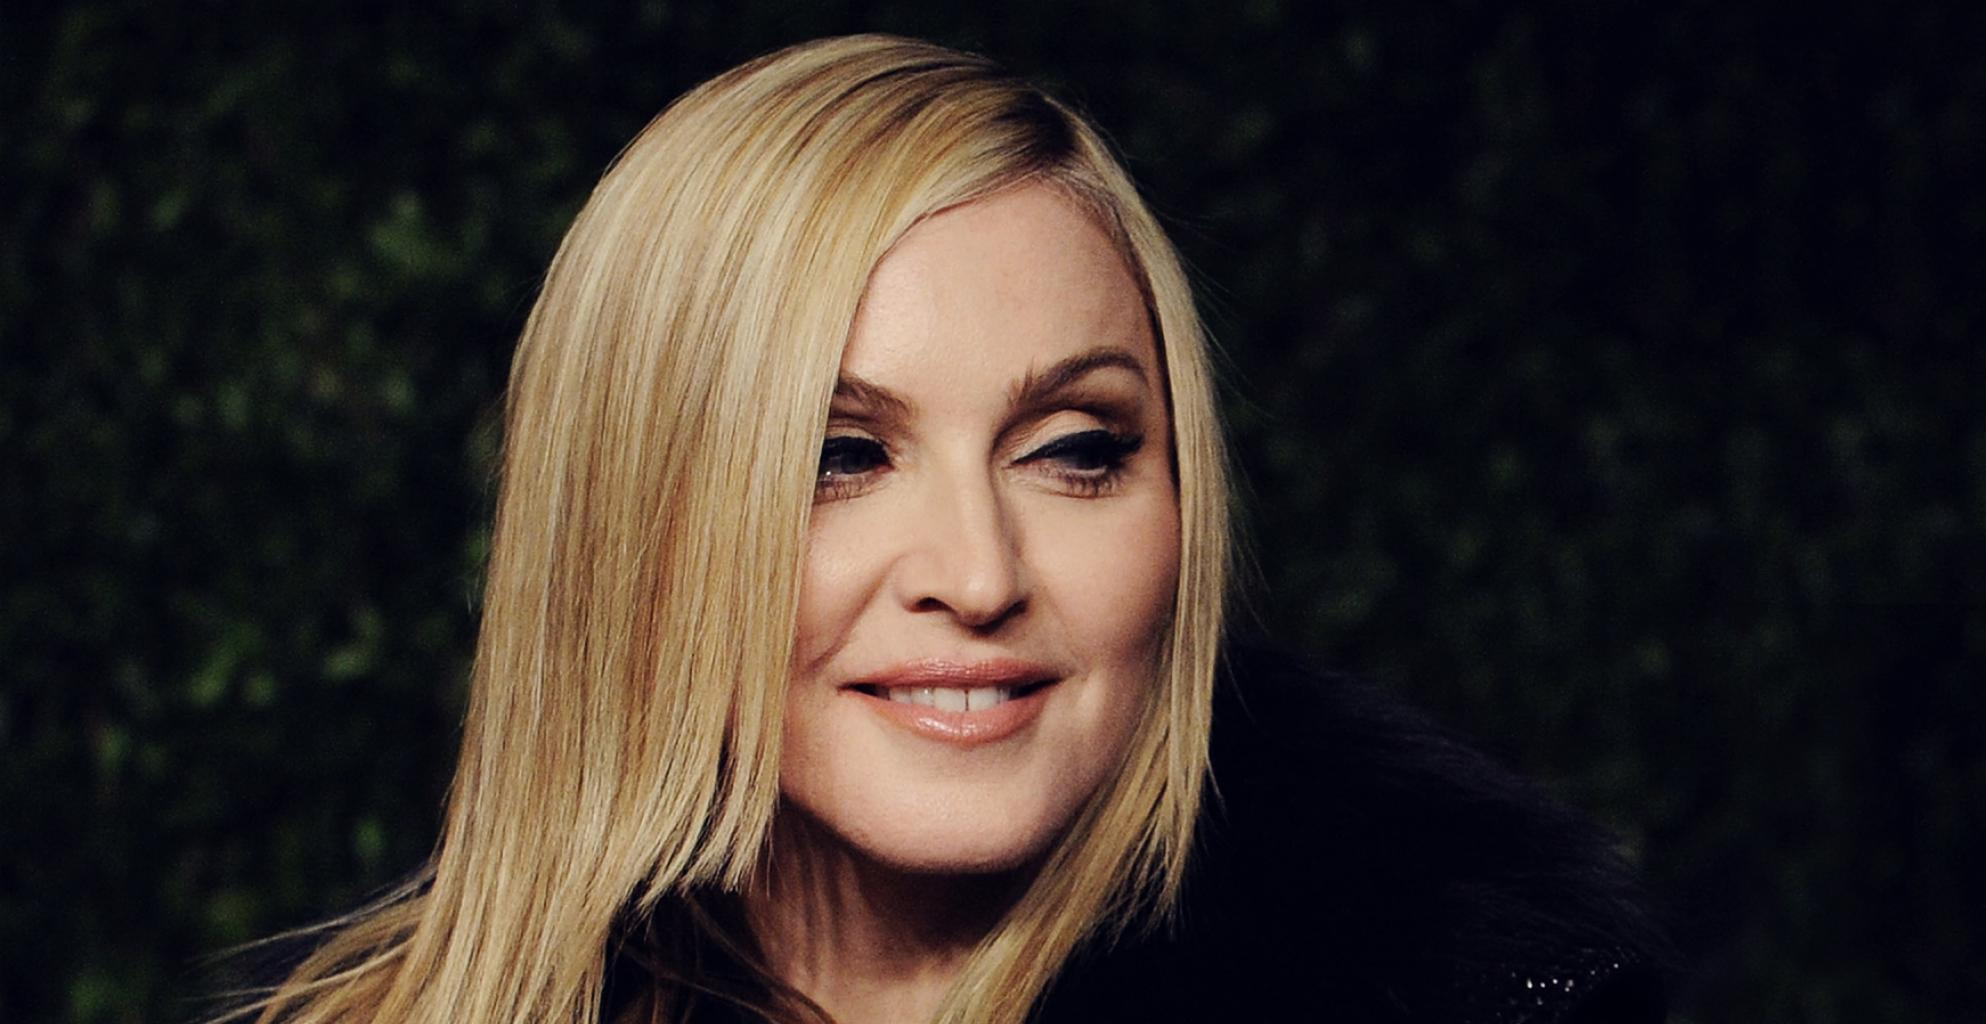 Madonna Proves Age Is Just A Number In Video Of Her Dancing Around A Pole!